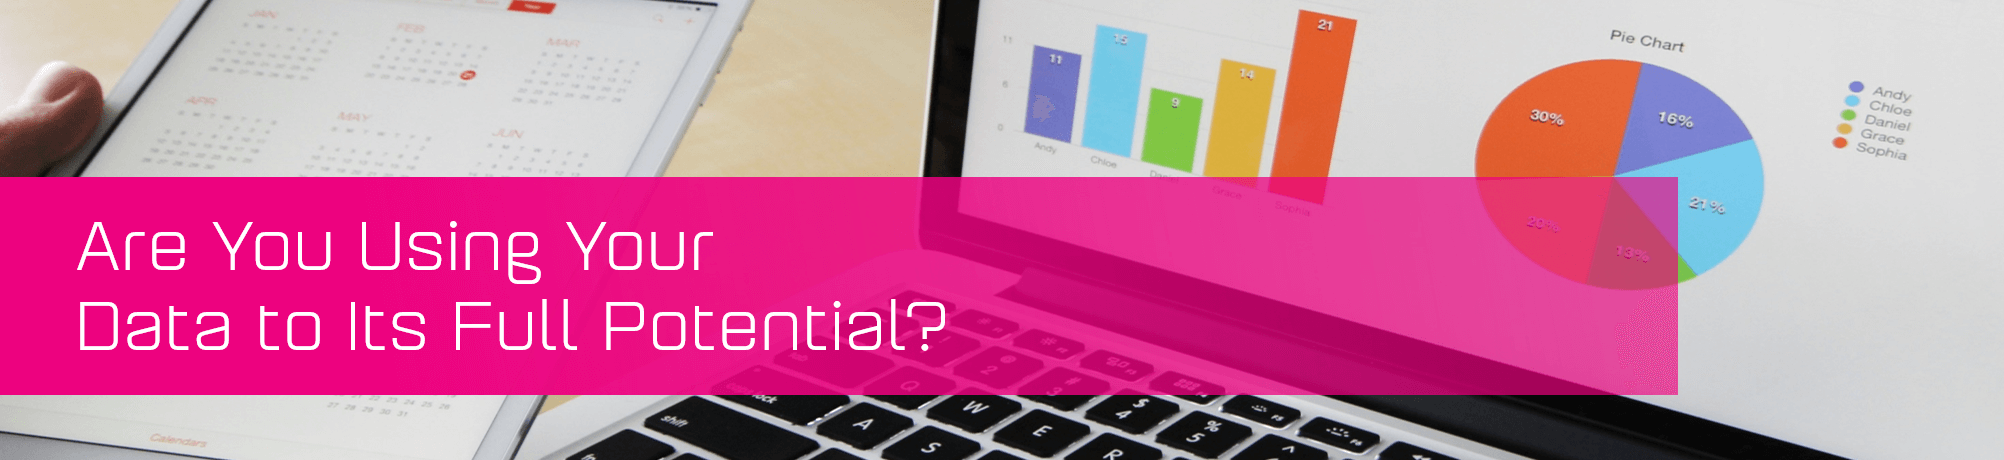 KCS SA - Blog - Are You Using Your Data to Its Full Potential 2